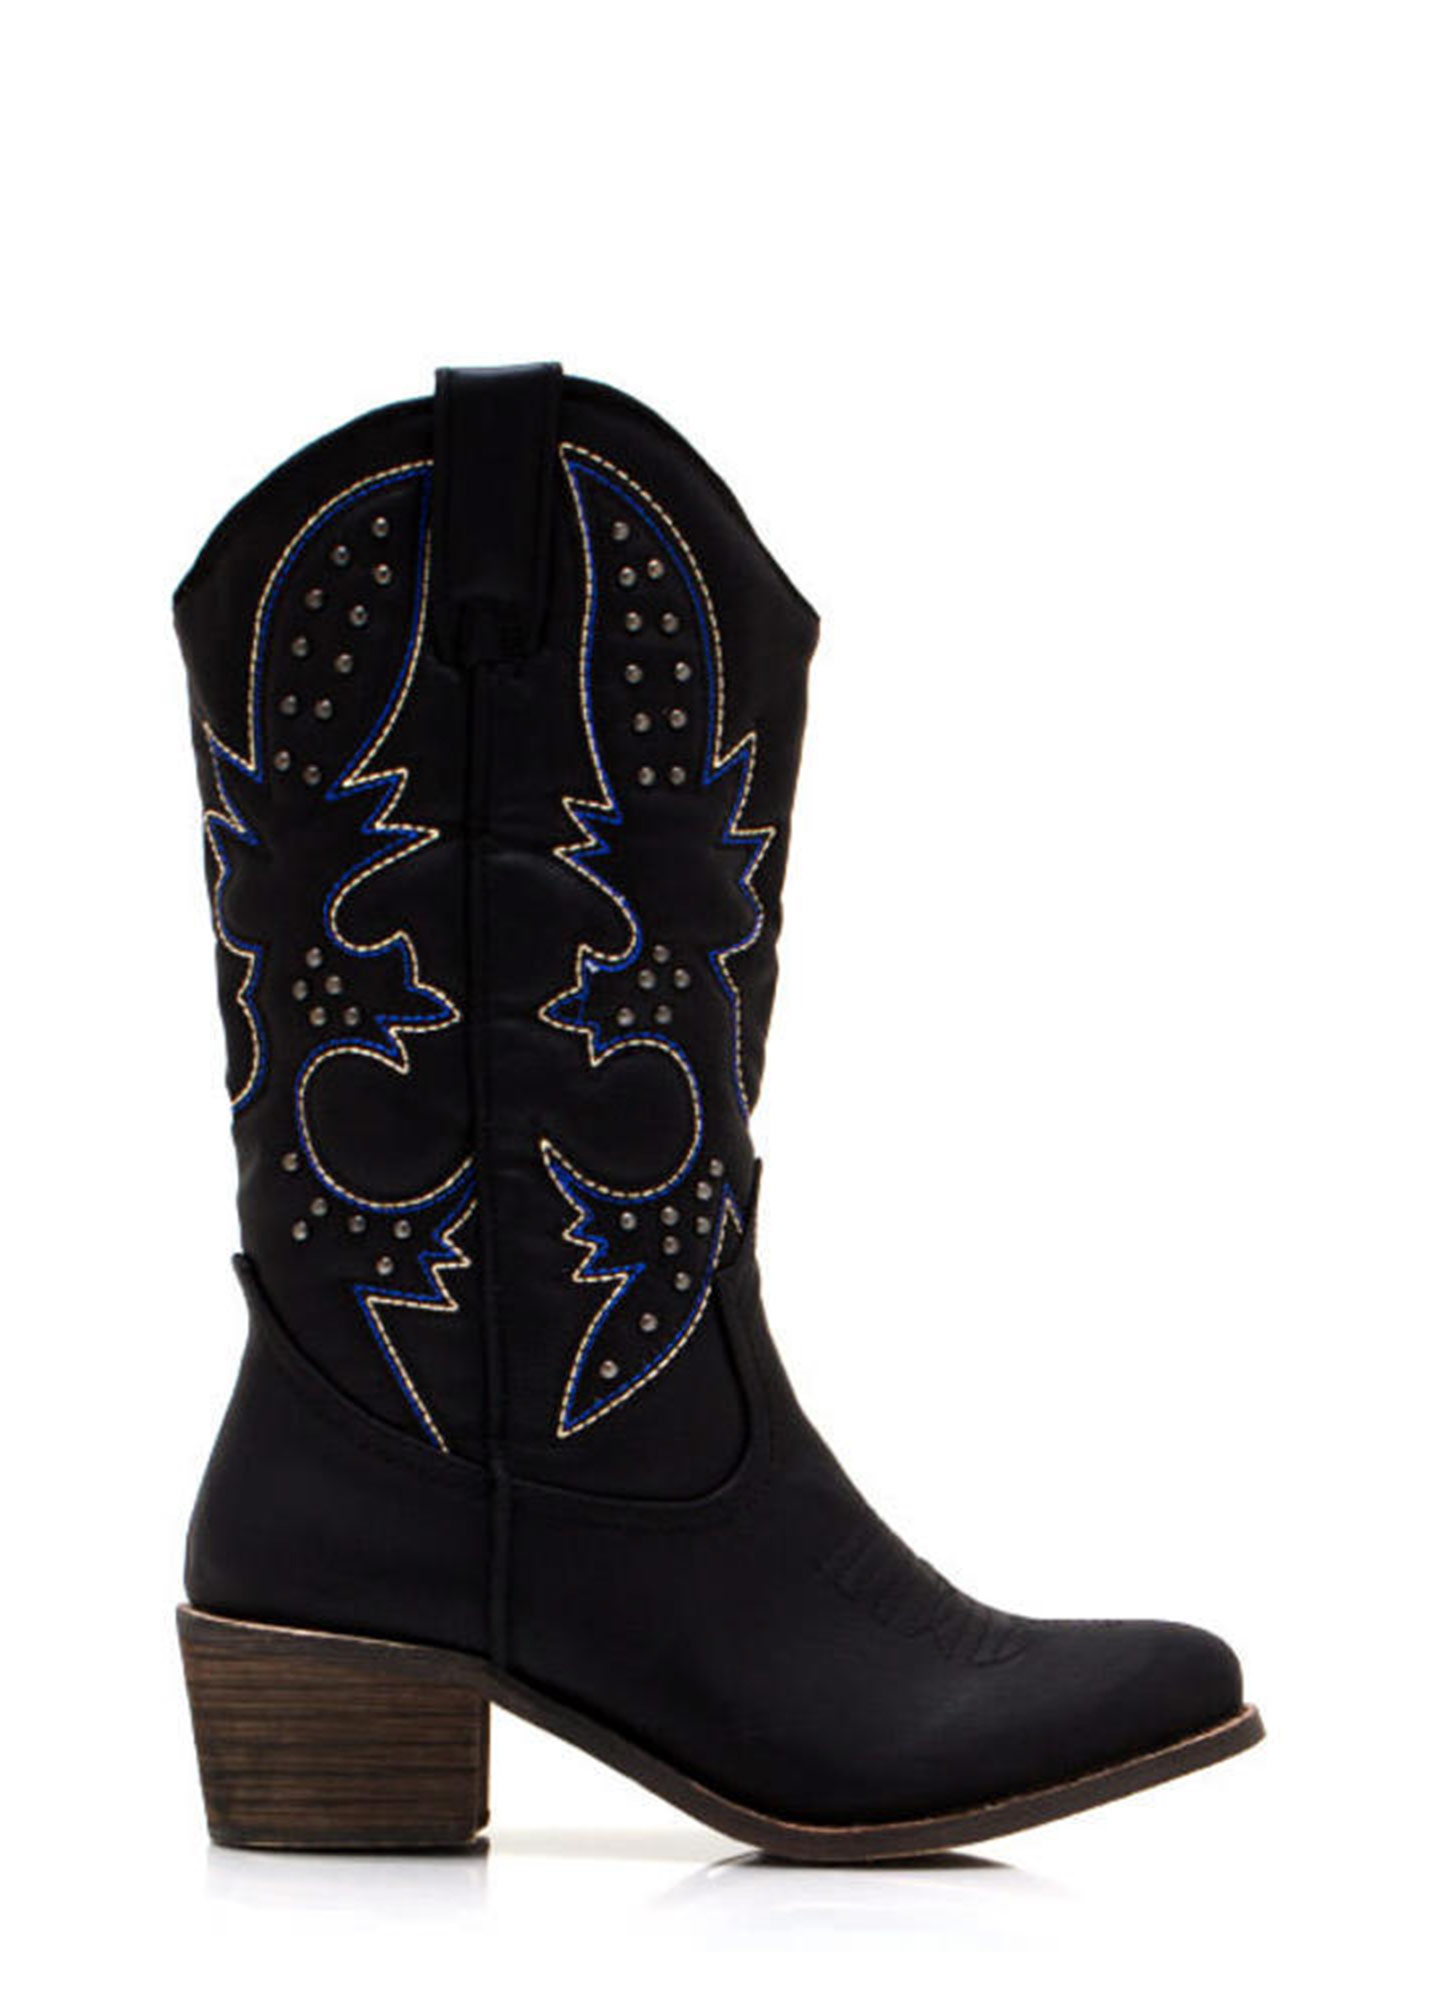 Get Stitches Studded Cowgirl Boots BLACK